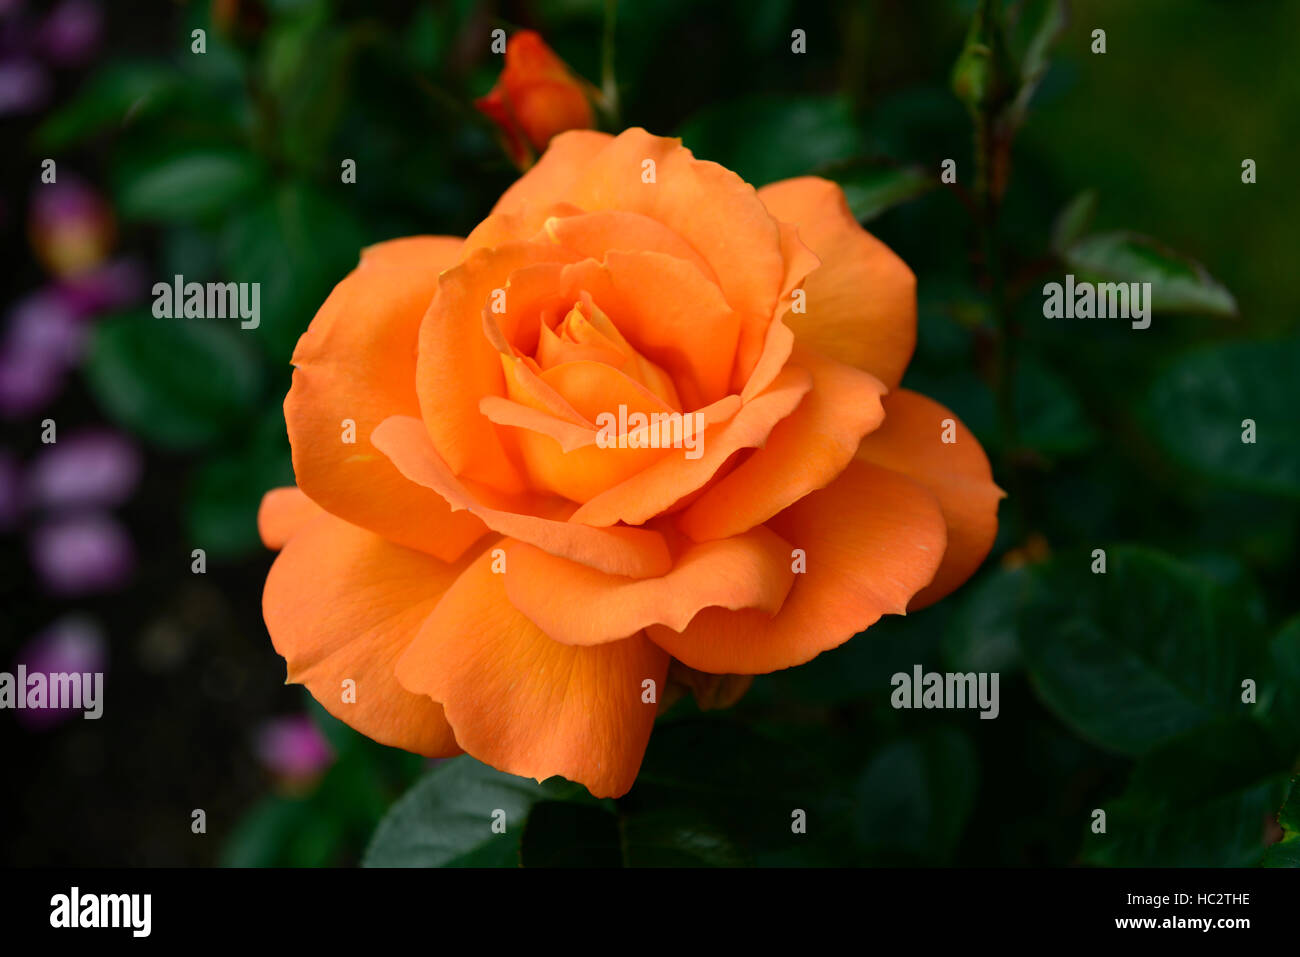 rosa sparkle frymerlin Hybrid Tea Rose roses orange blooms blooming flower flowering flowers summer fragrant scented - Stock Image